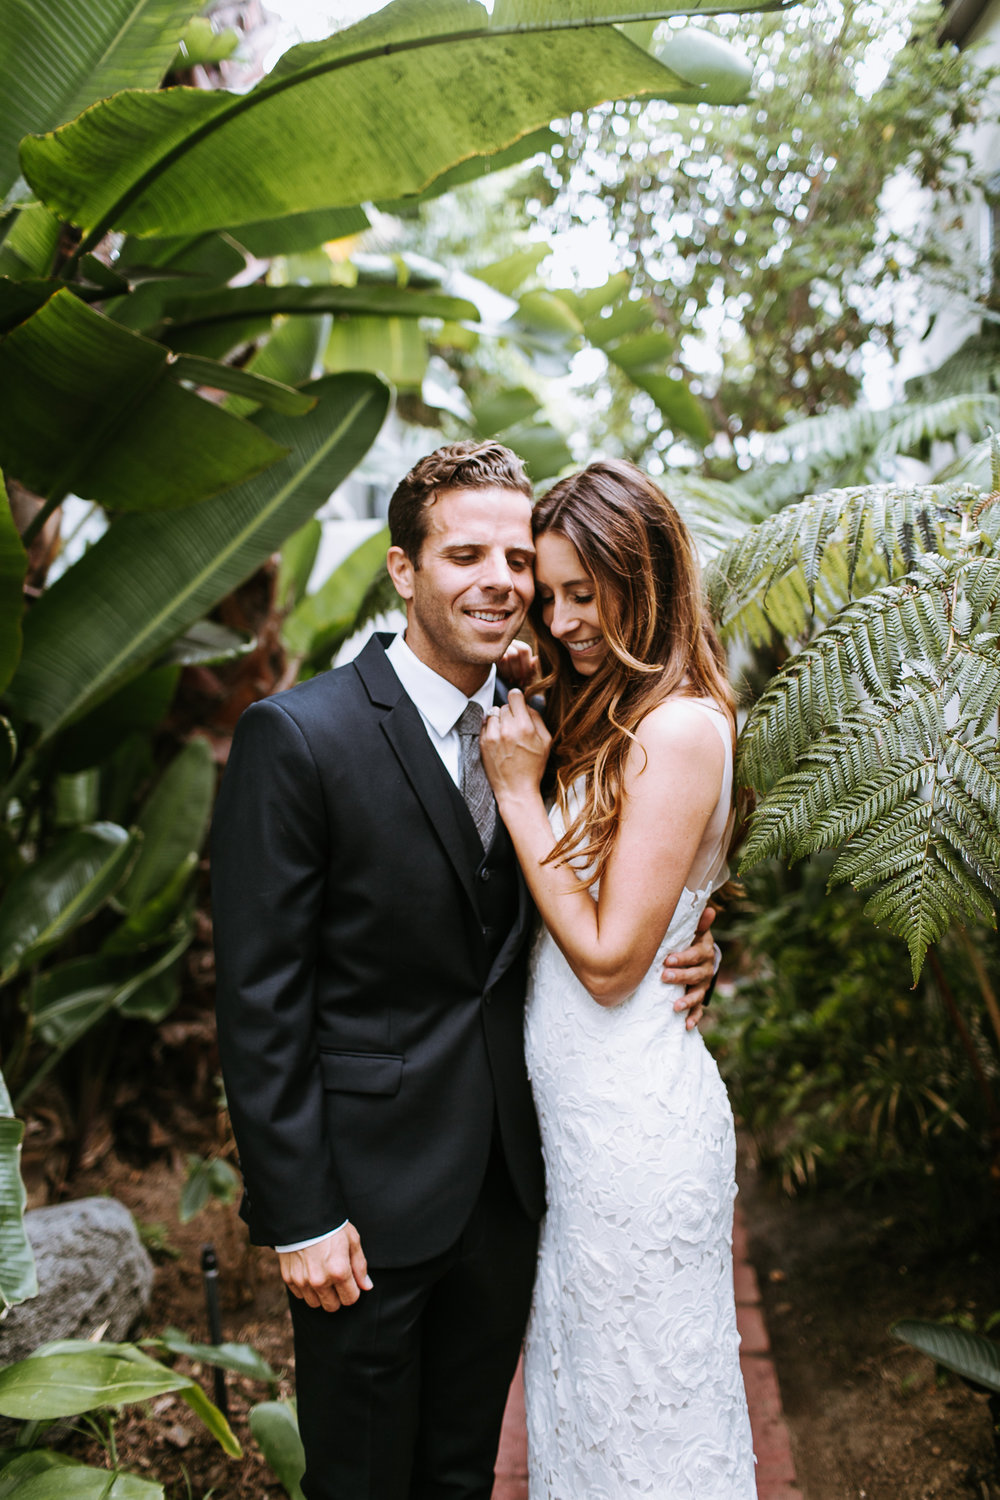 LagunaBeach-WeddingPhotographer-20.jpg